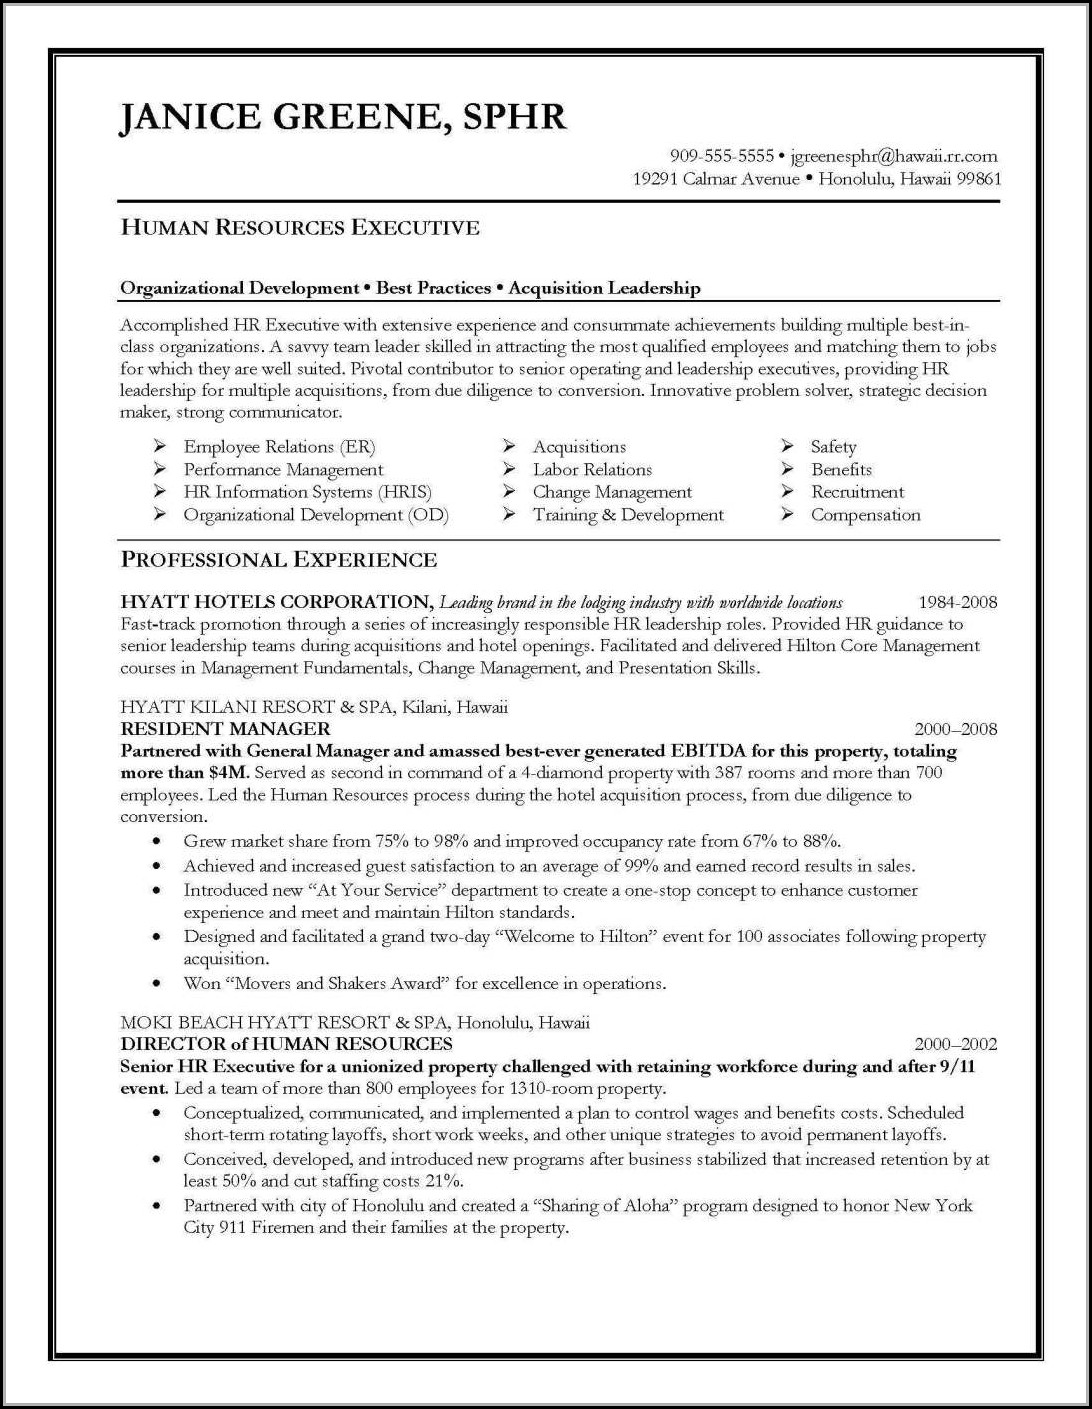 A Better Resume Service Naperville Reviews